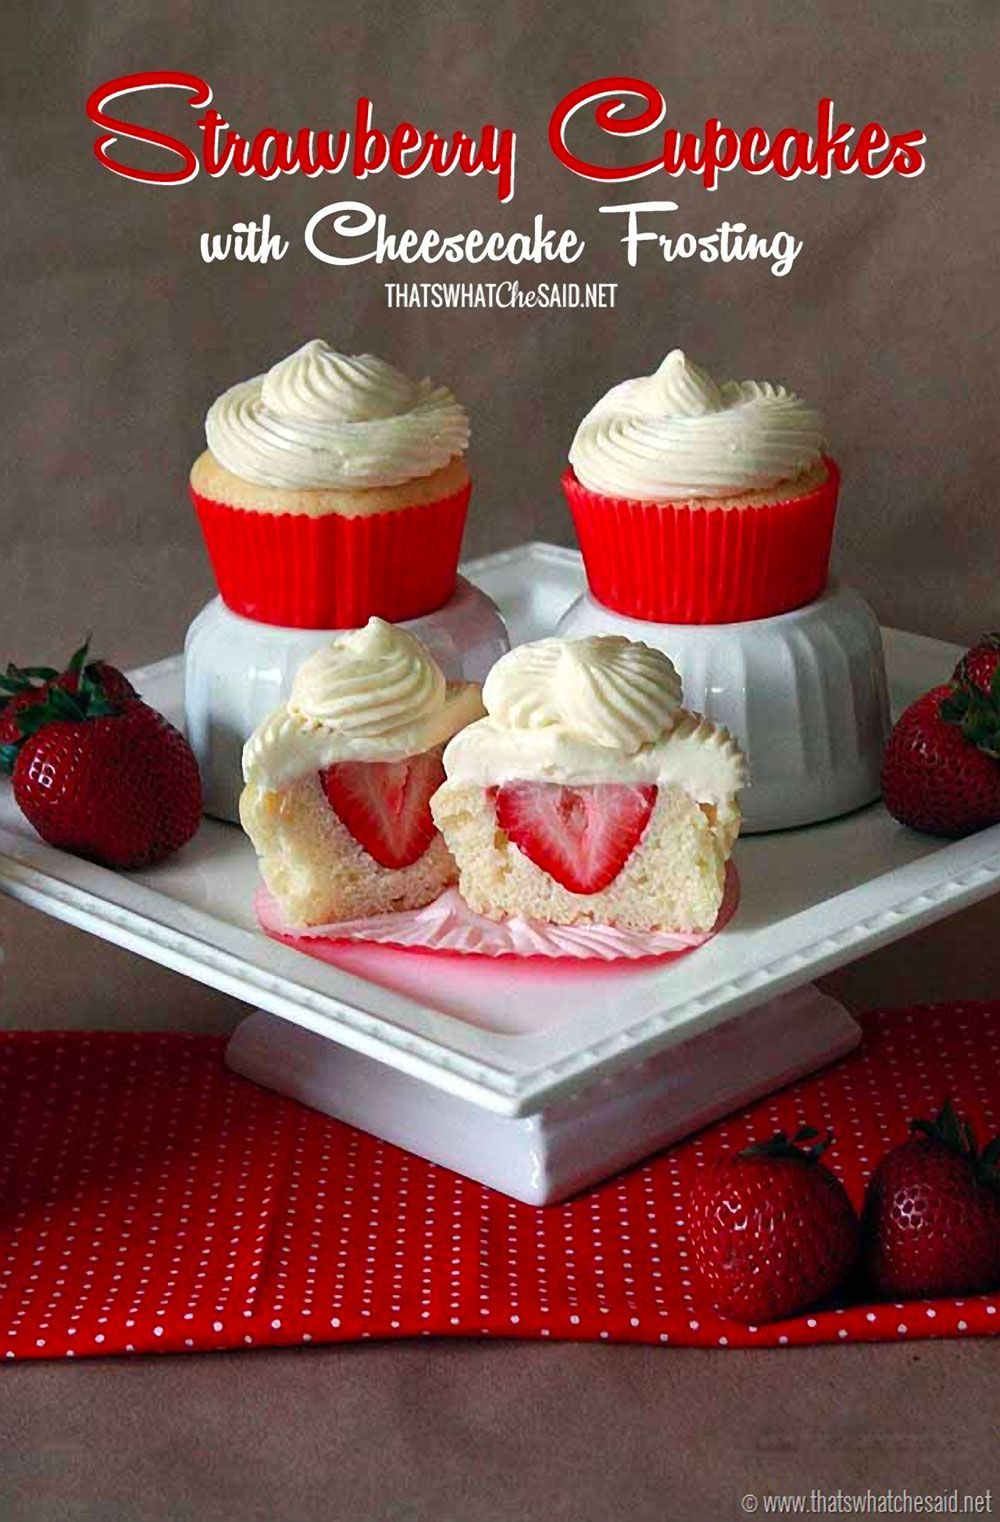 These Surprise Strawberry Cupcakes with Cheesecake Frosting are so satisfying and they will make you look like you are Betty Homemaker!   http://thecupcakedailyblog.com/surprise-strawberry-cupcakes-with-cheesecake-frosting/ #strawberry #cupcakerecipes #cheesecakefrosting